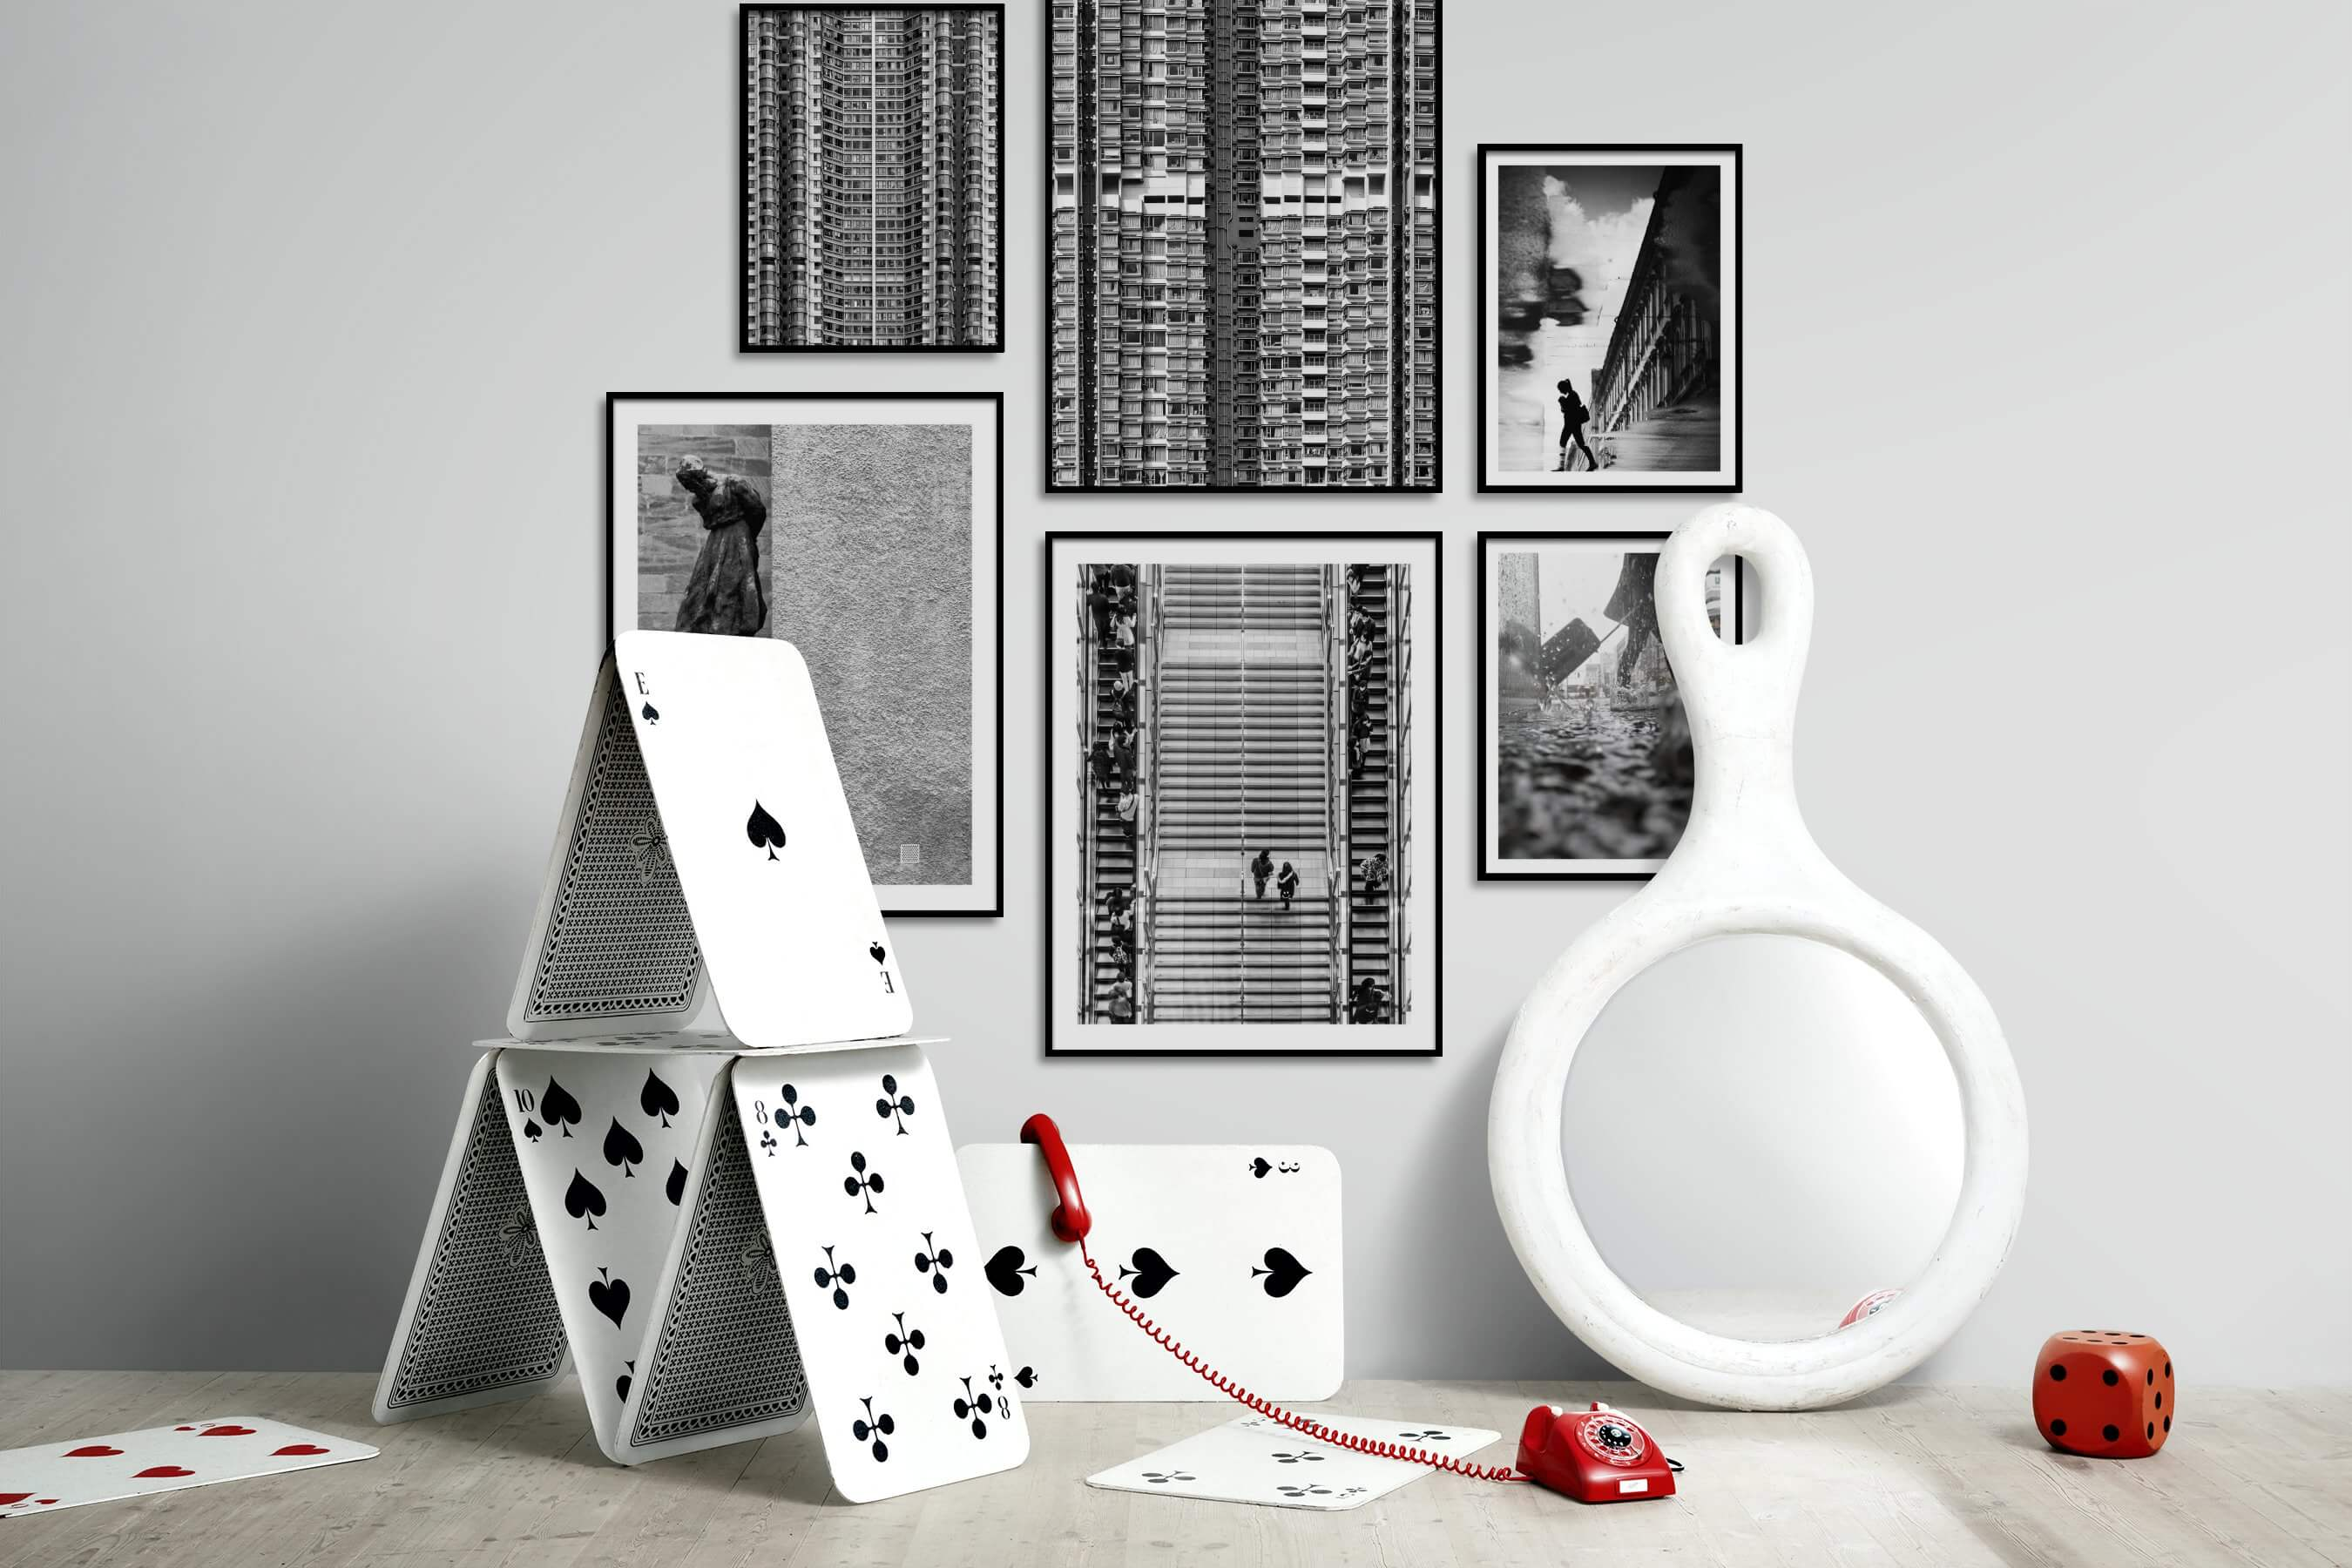 Gallery wall idea with six framed pictures arranged on a wall depicting Black & White, For the Maximalist, City Life, and For the Moderate